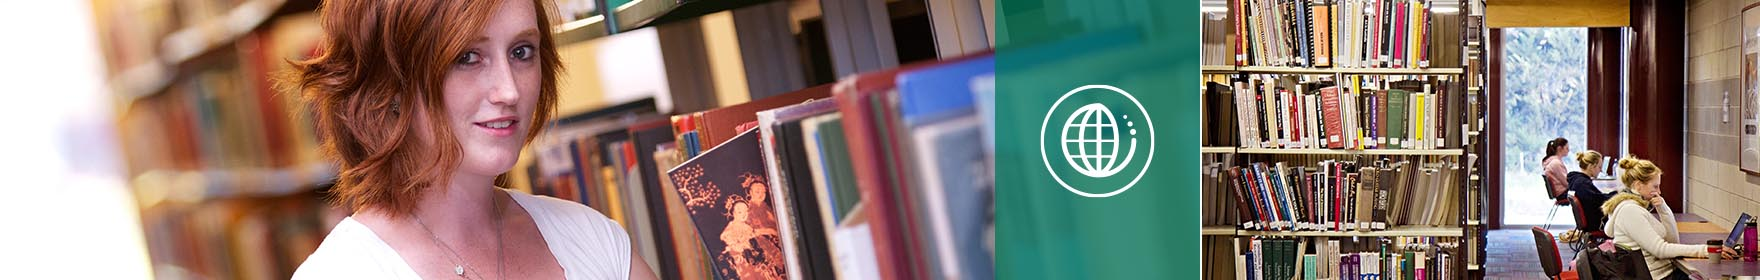 Information and Library Studies